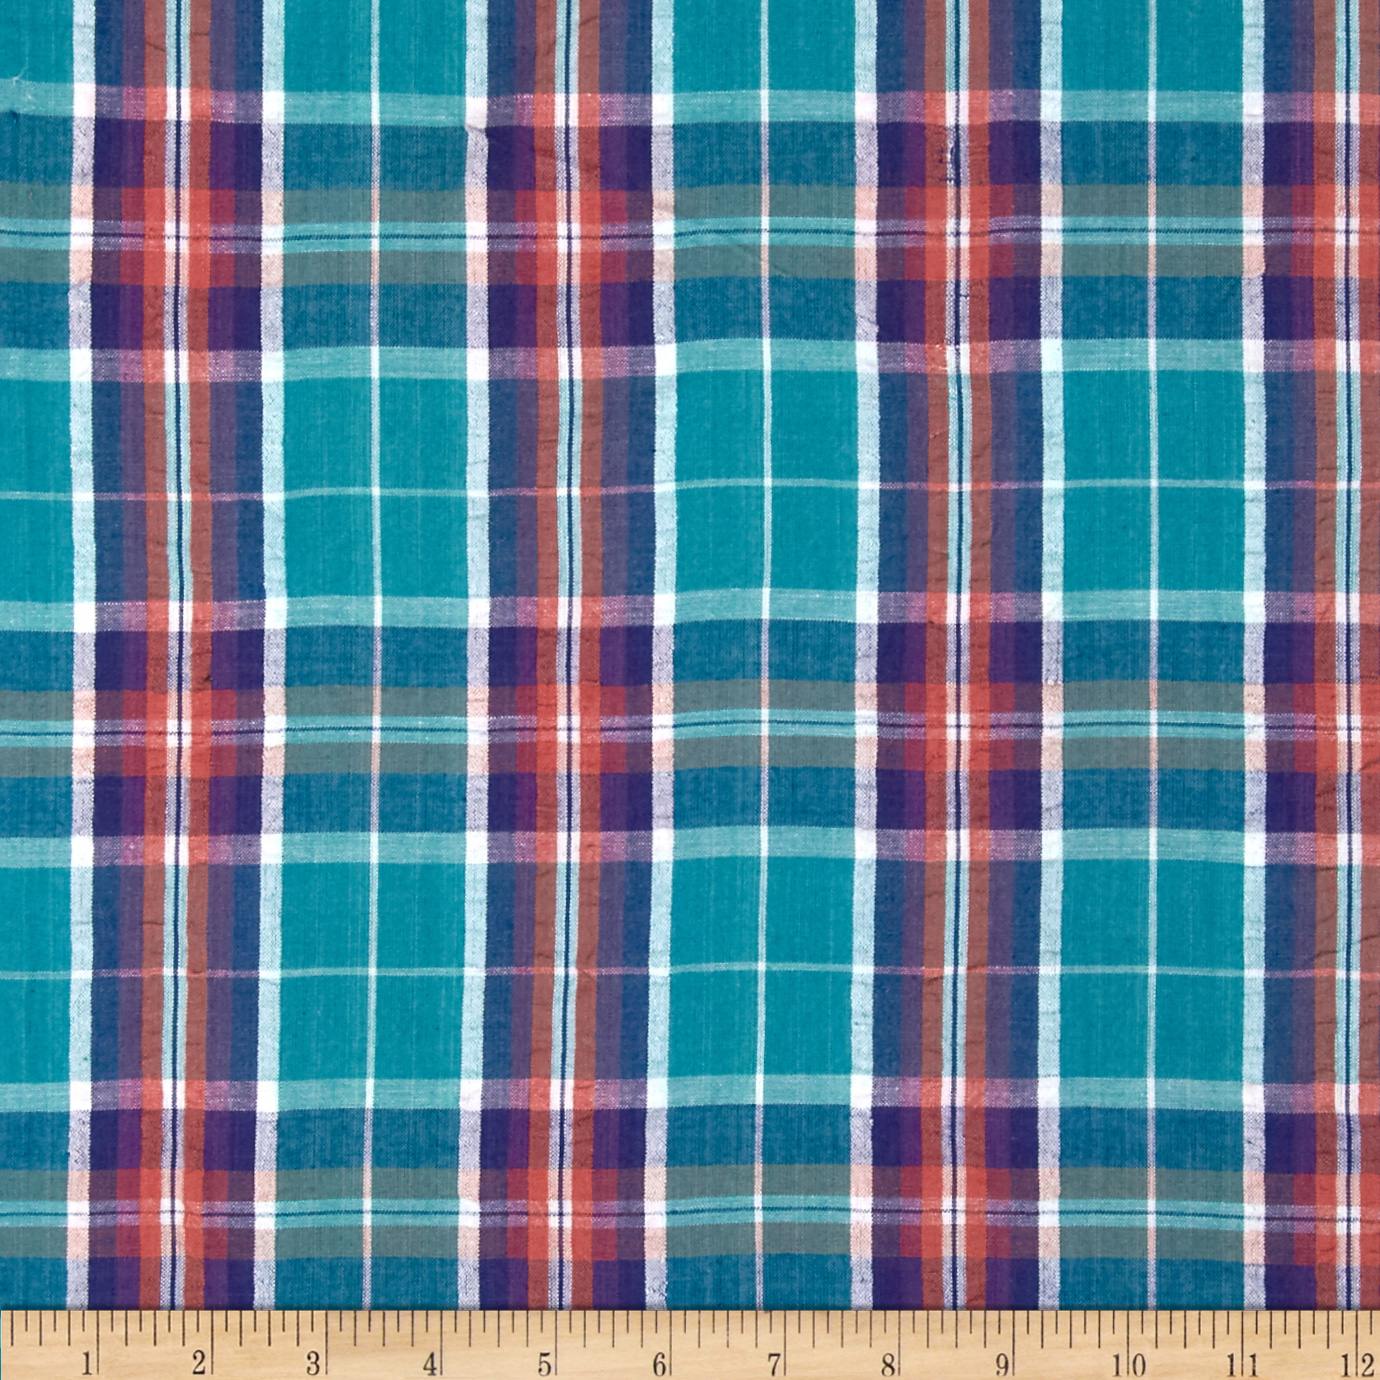 Yarn Dyed Seersucker Plaid Turquoise/Navy